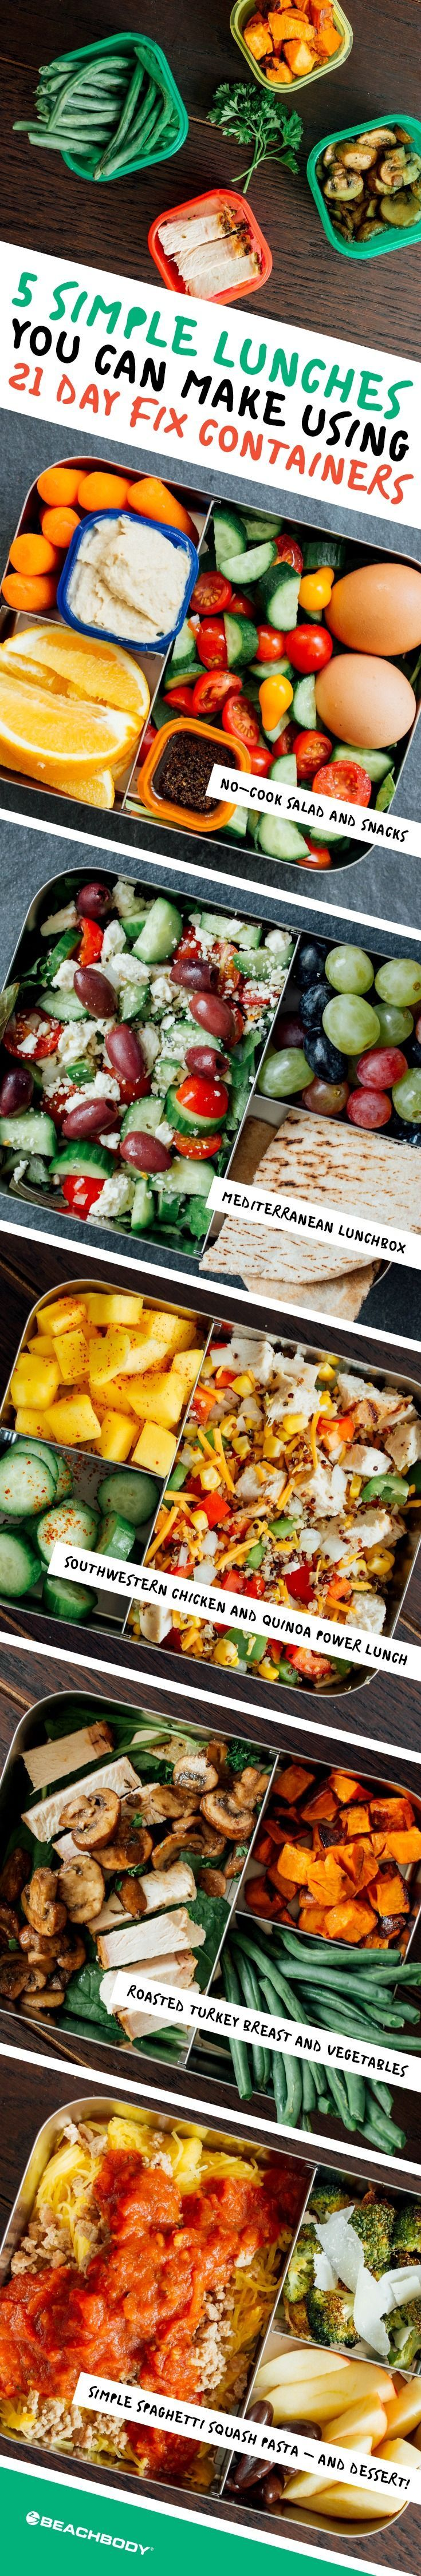 It's lunchtime! These lunches show exactly how you can build a balanced meal in no time using 21 Day Fix containers. They use a combination of raw and easy-to-cook ingredients that make meal prep fast. // meal prep // meal plan // meal planning // bento box // healthy eating // eat clean // clean eating // fresh food // lunch // lunchtime // snacks // Beachbody // http://Beachbody.com